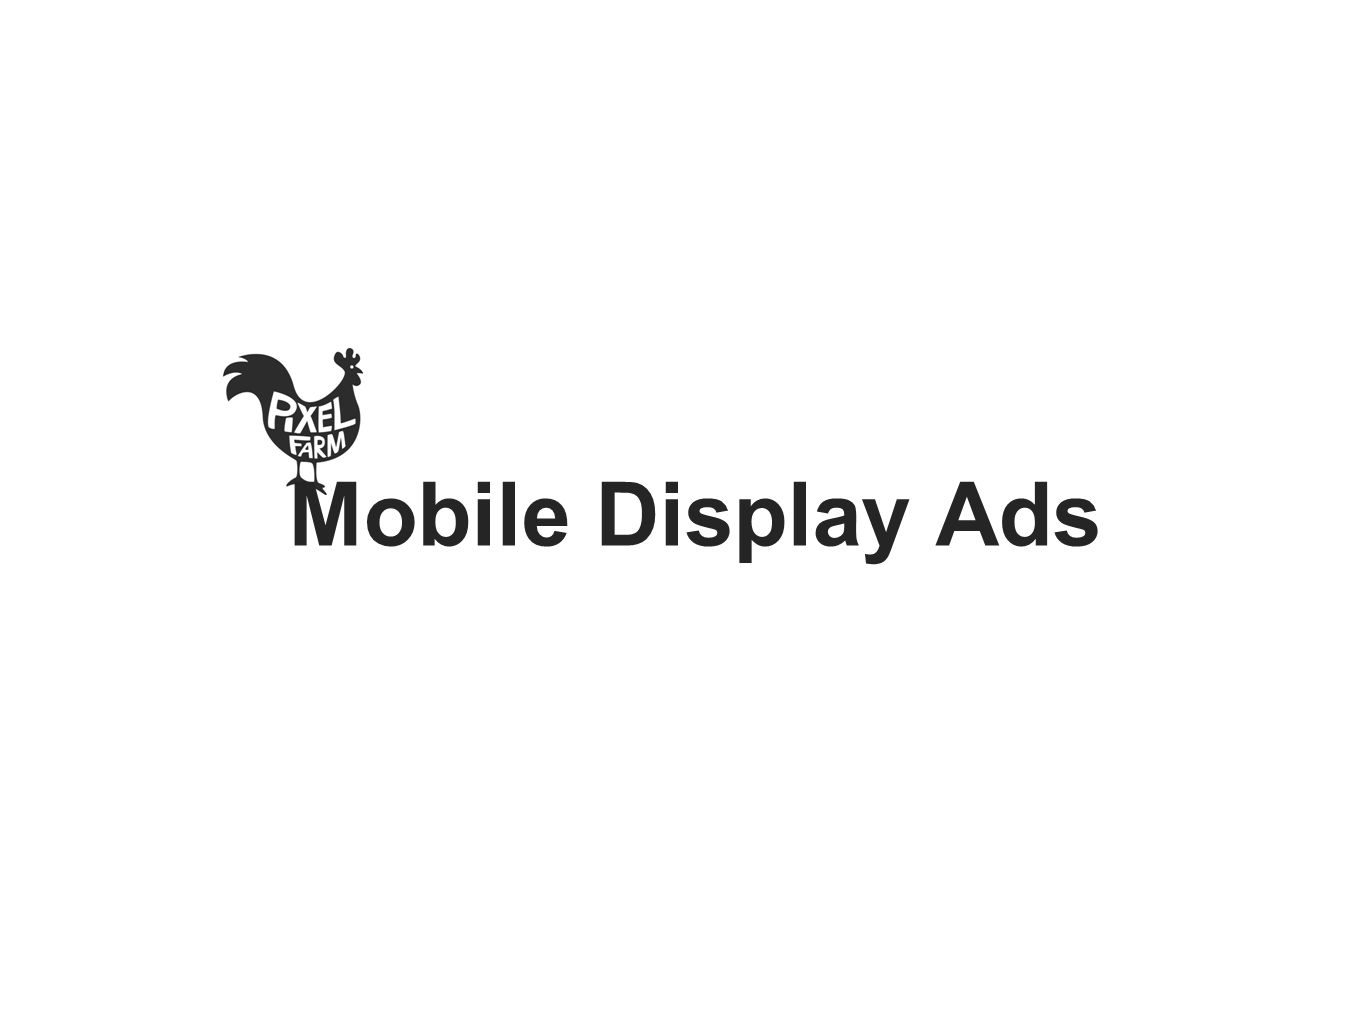 Mobile Display Ads